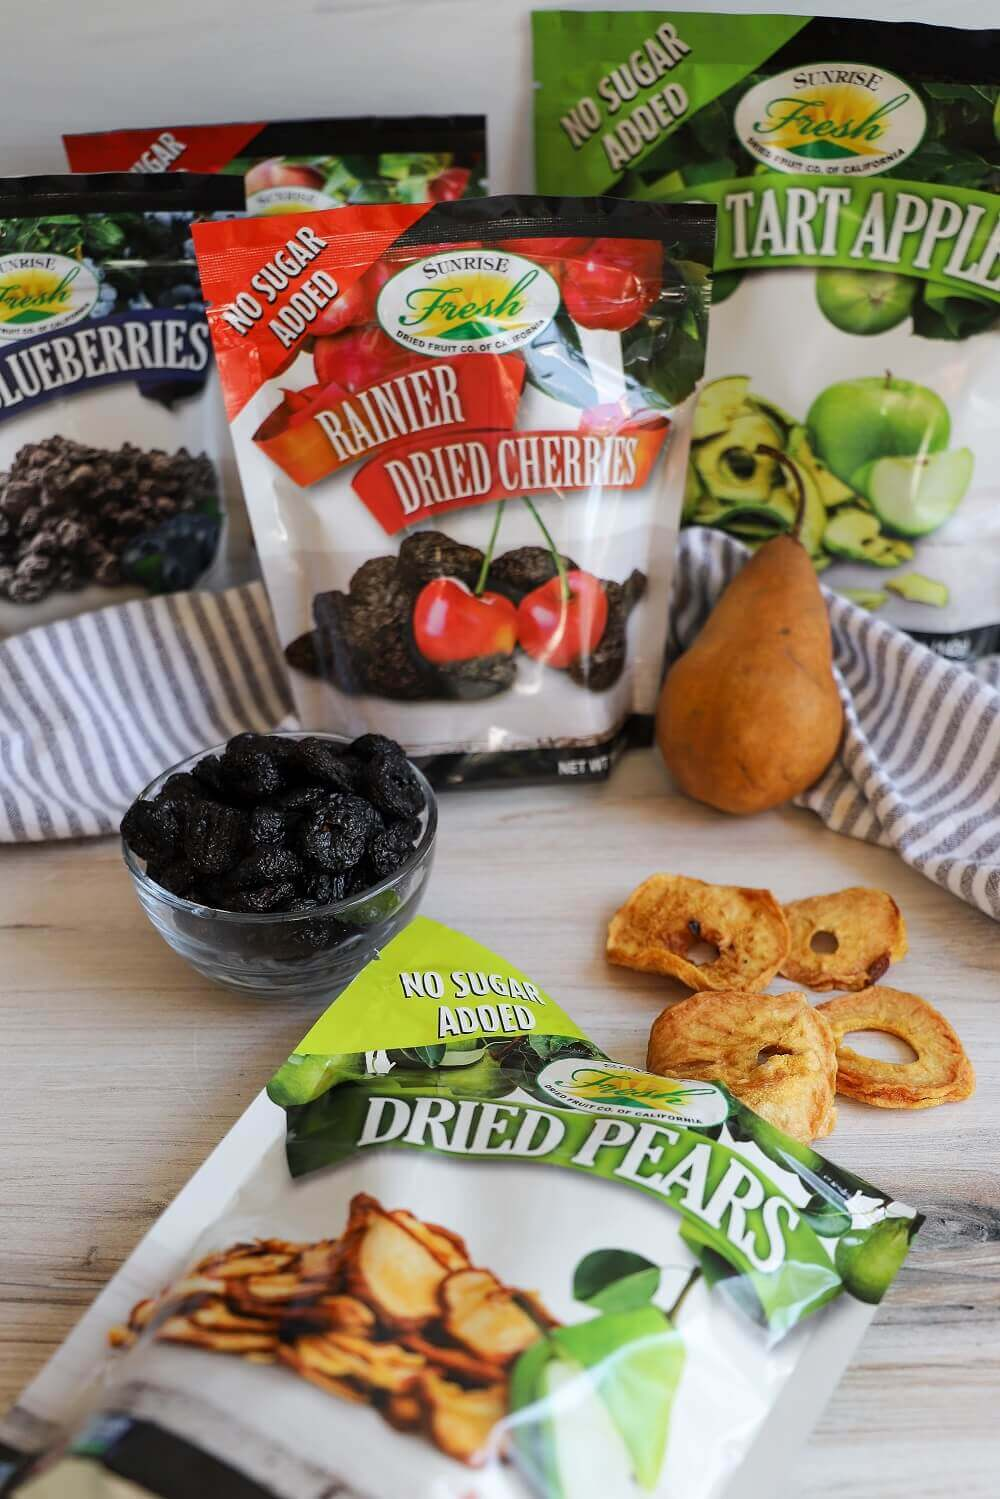 What's your favorite dried fruit?